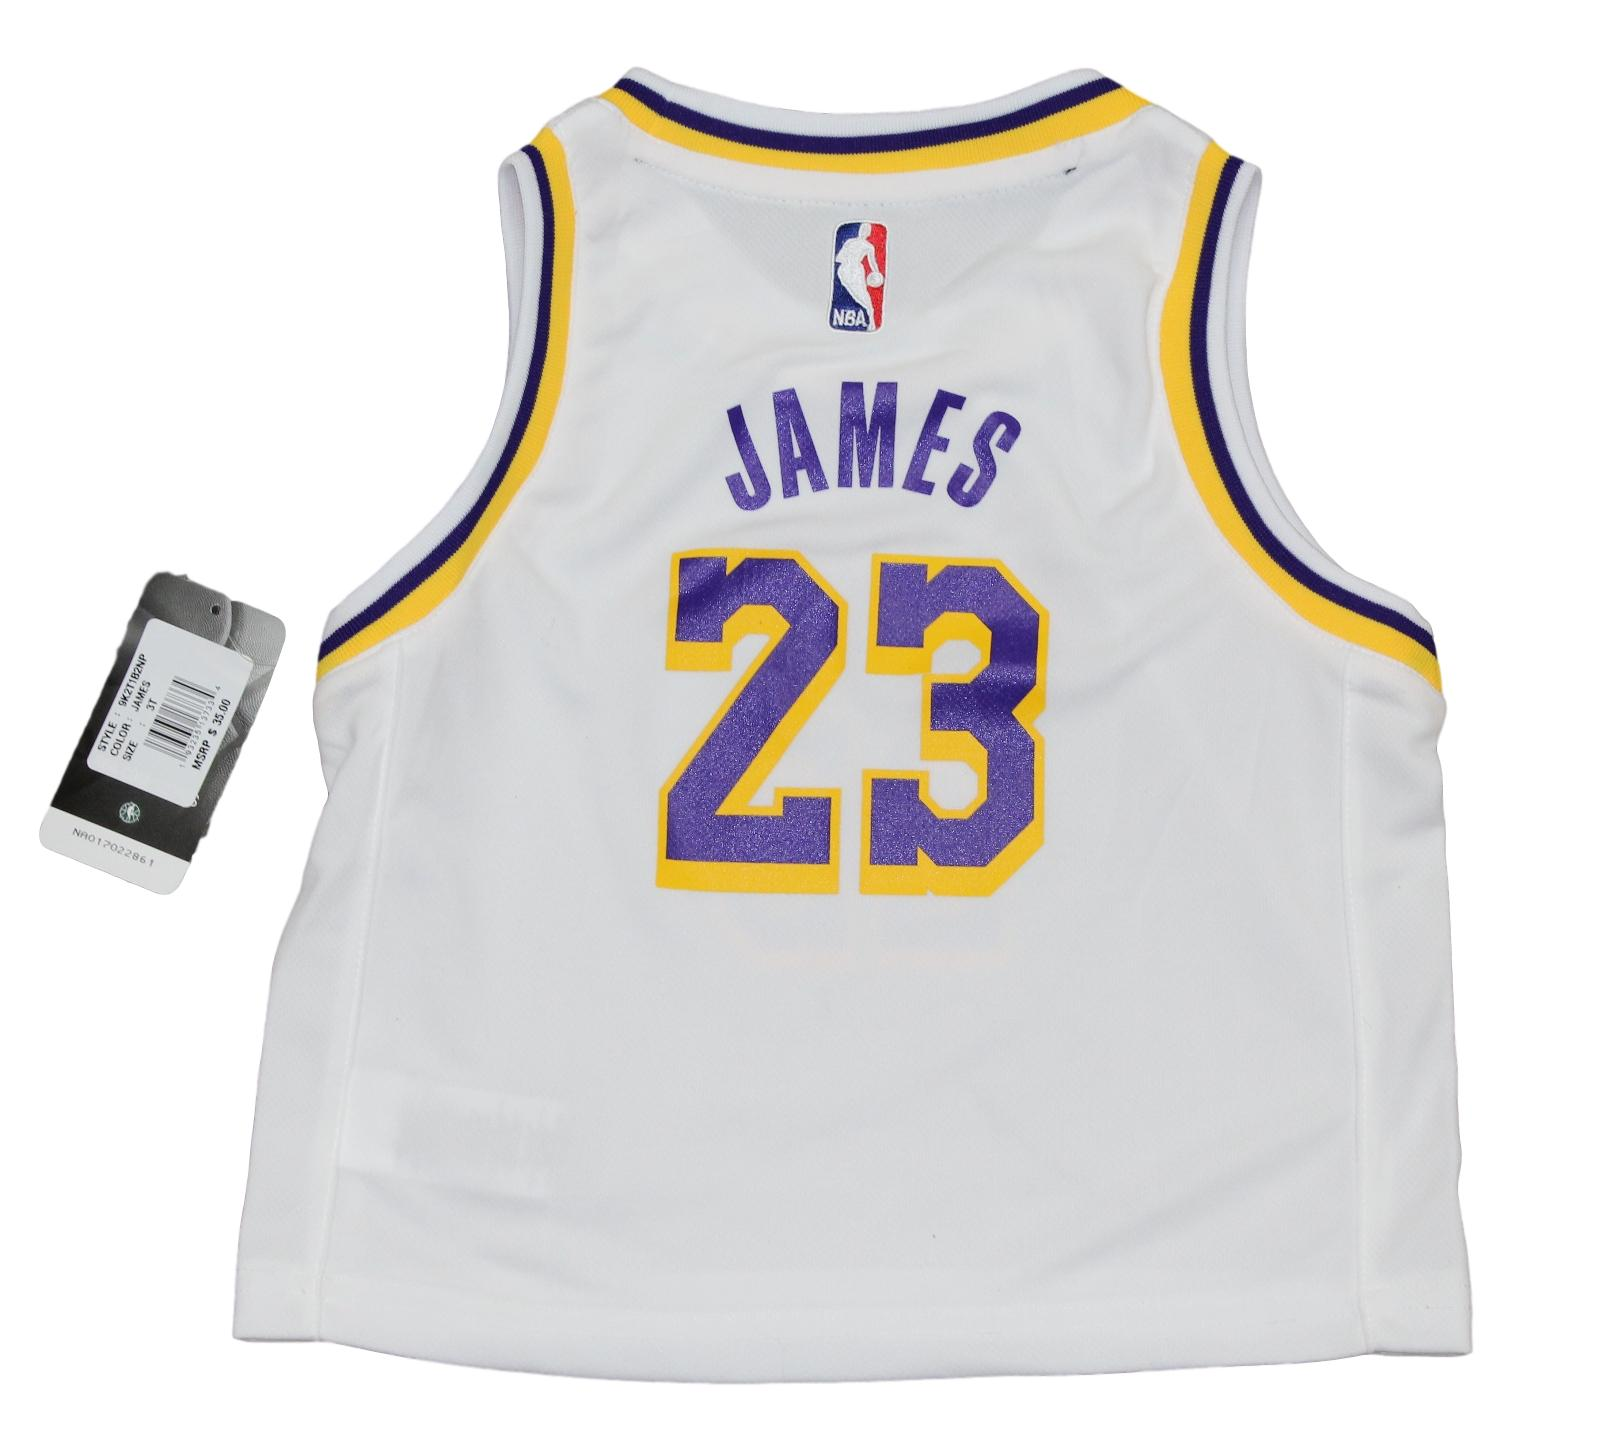 b4b51aee807bb Lebron James Los Angeles Lakers Toddler NBA Replica Jersey - White. Lebron  James Los Angeles Lakers Toddler NBA ...